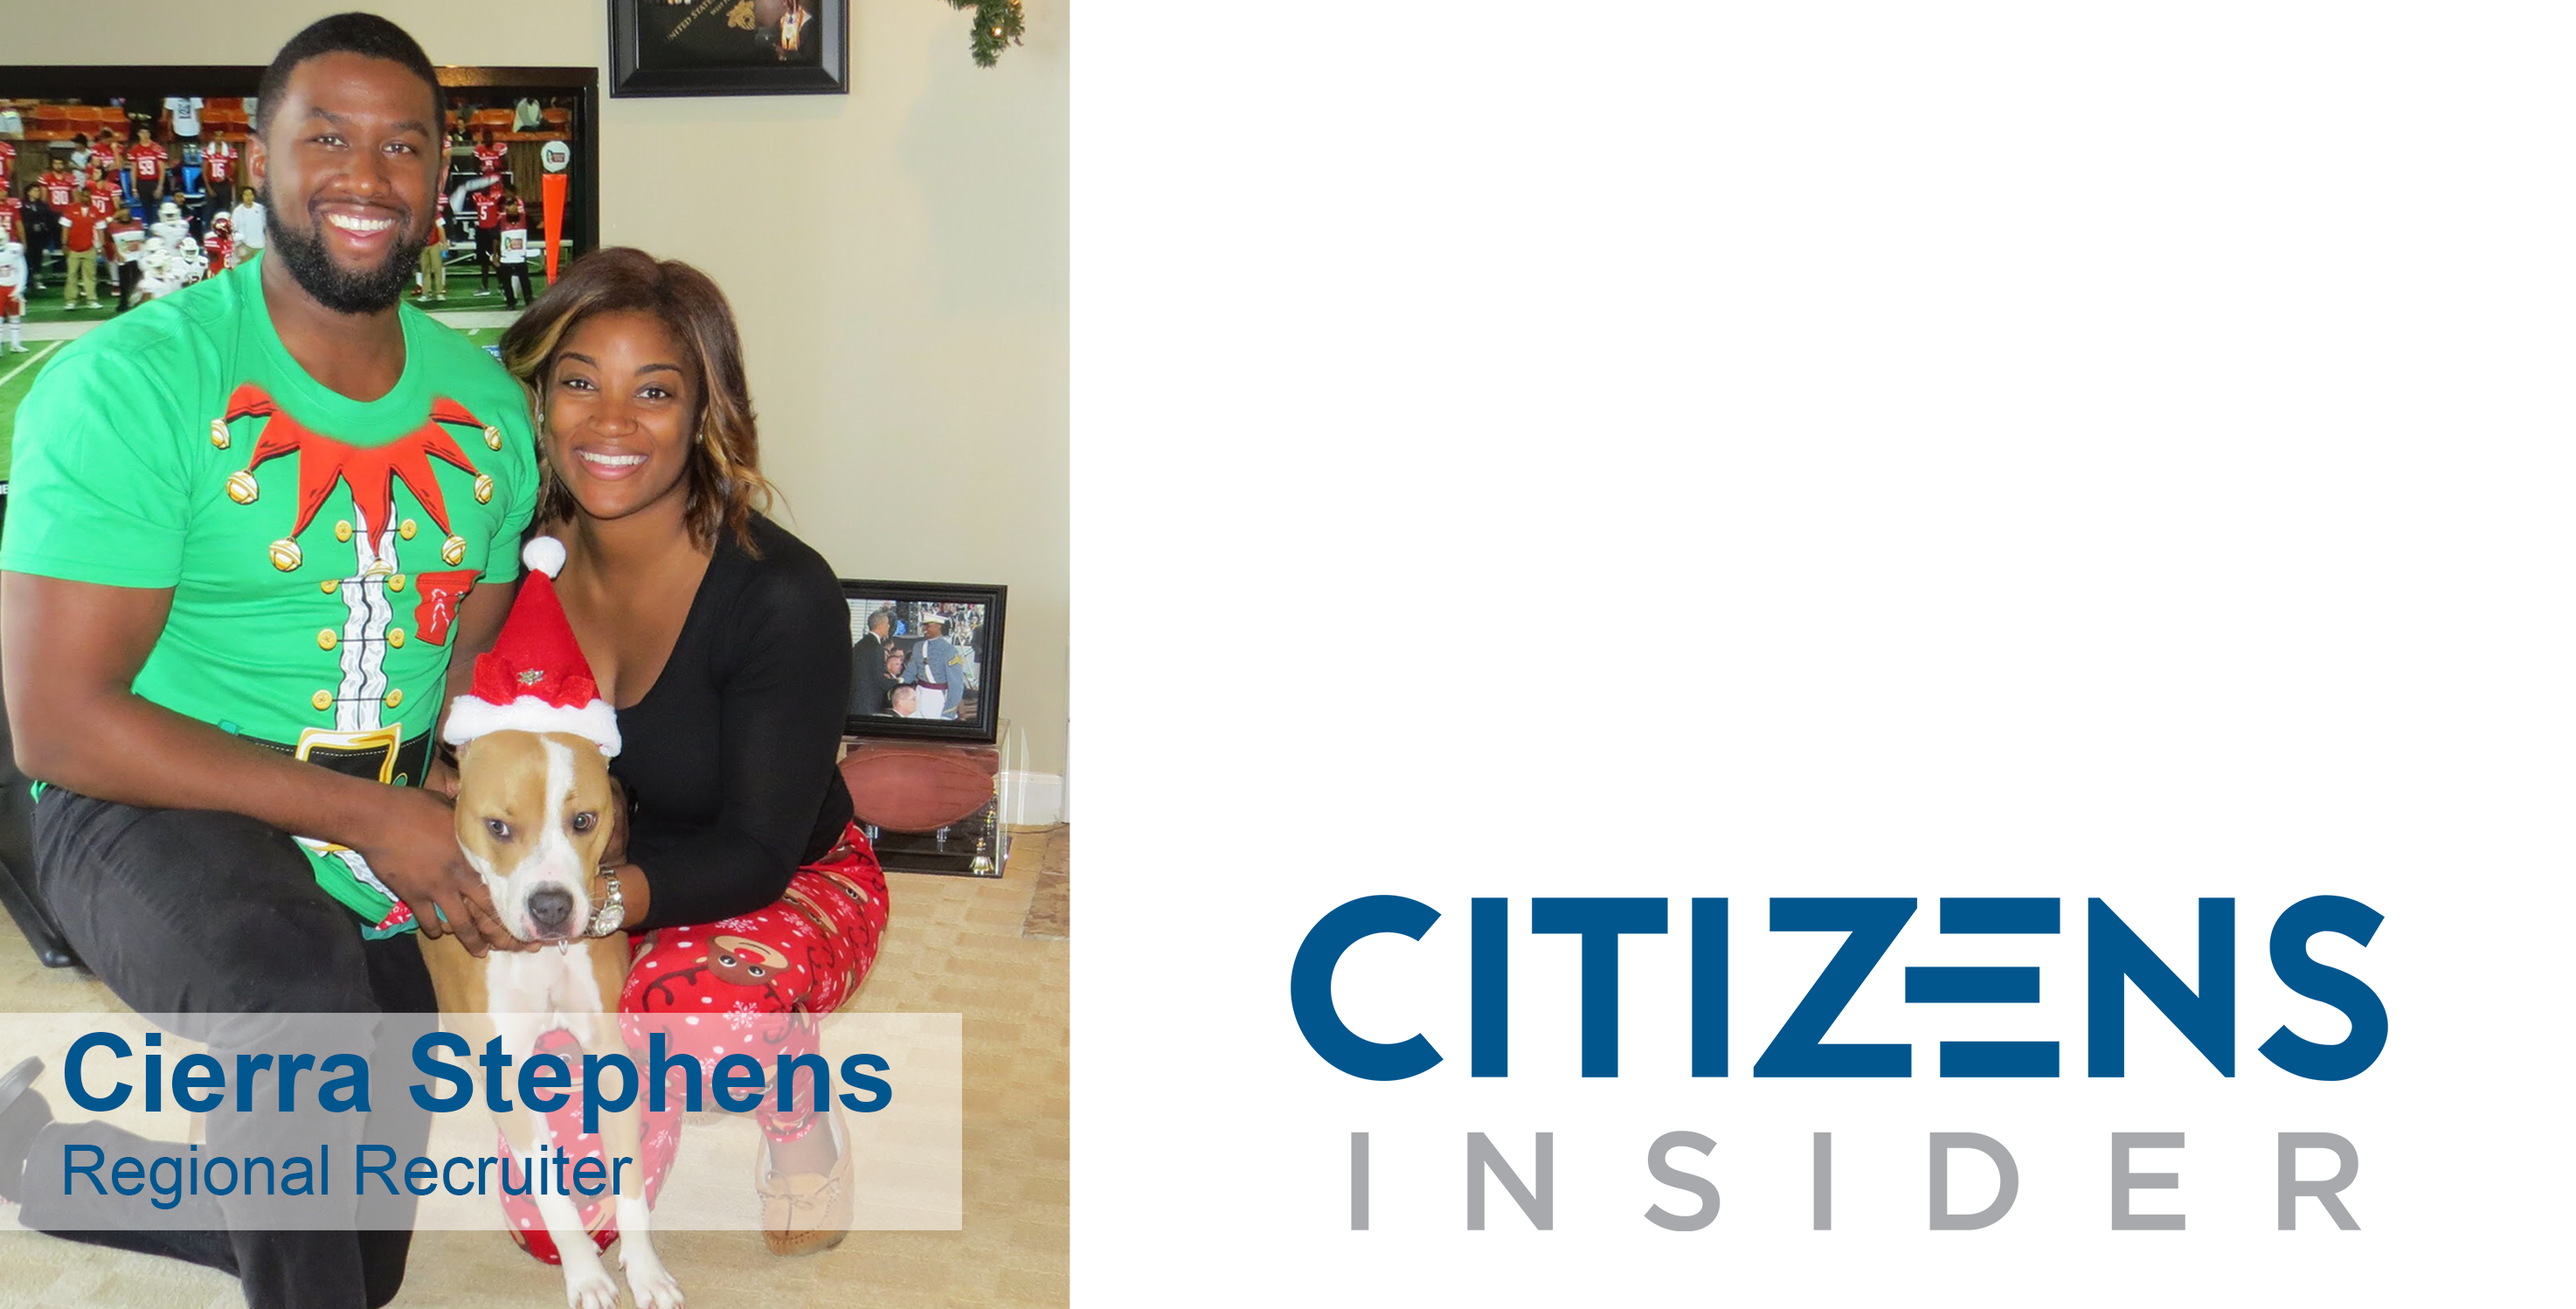 Citizens Insider: Cierra Stephens